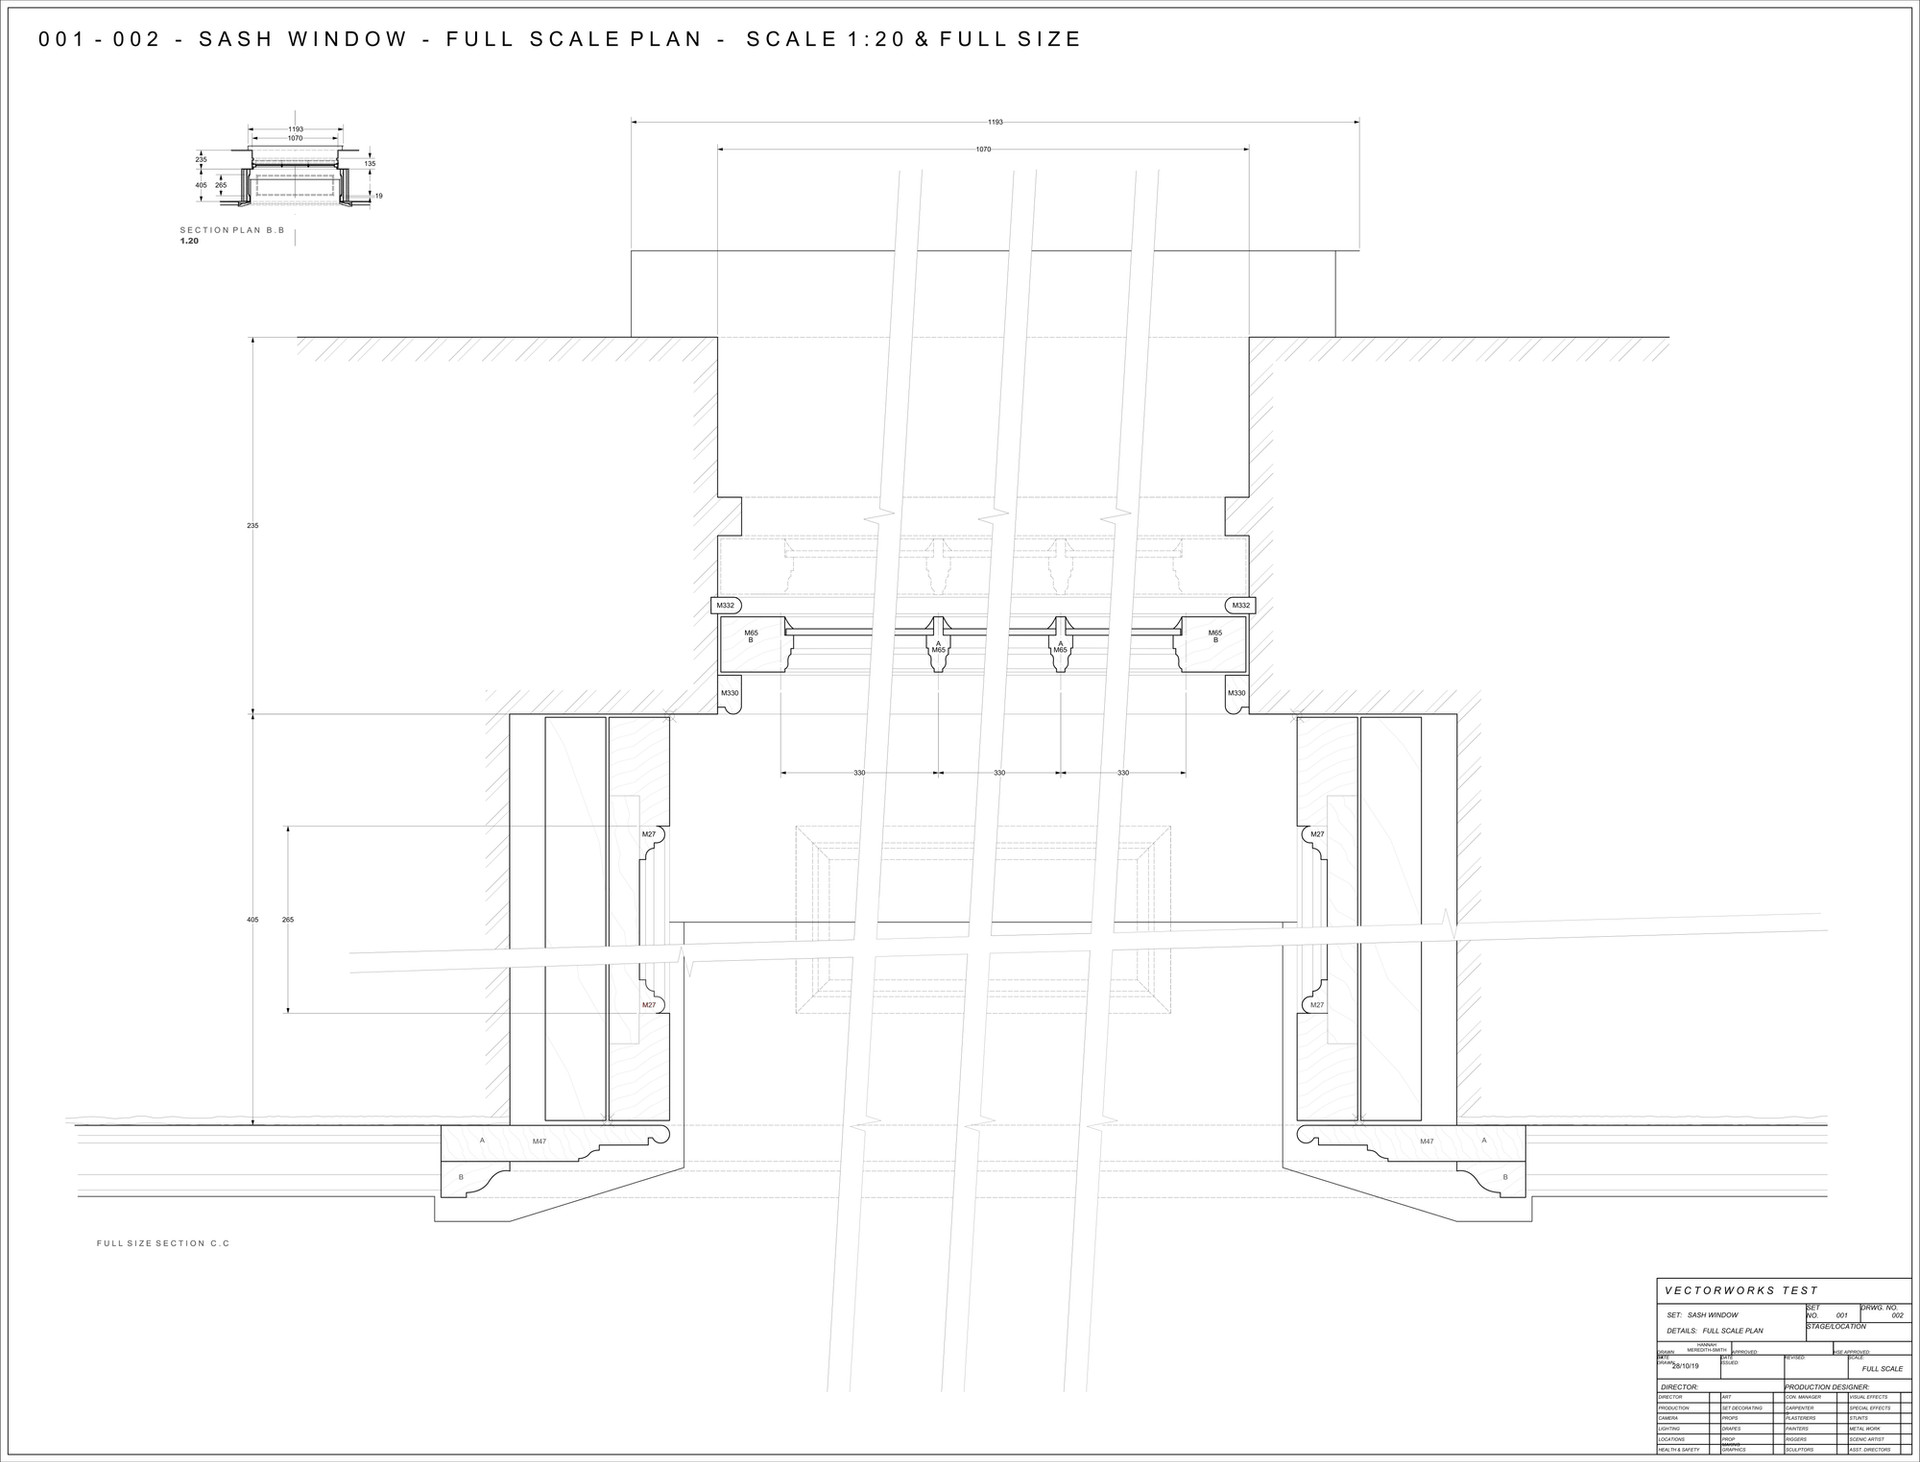 SASH WINDOW FULL SCALE PLAN.jpg